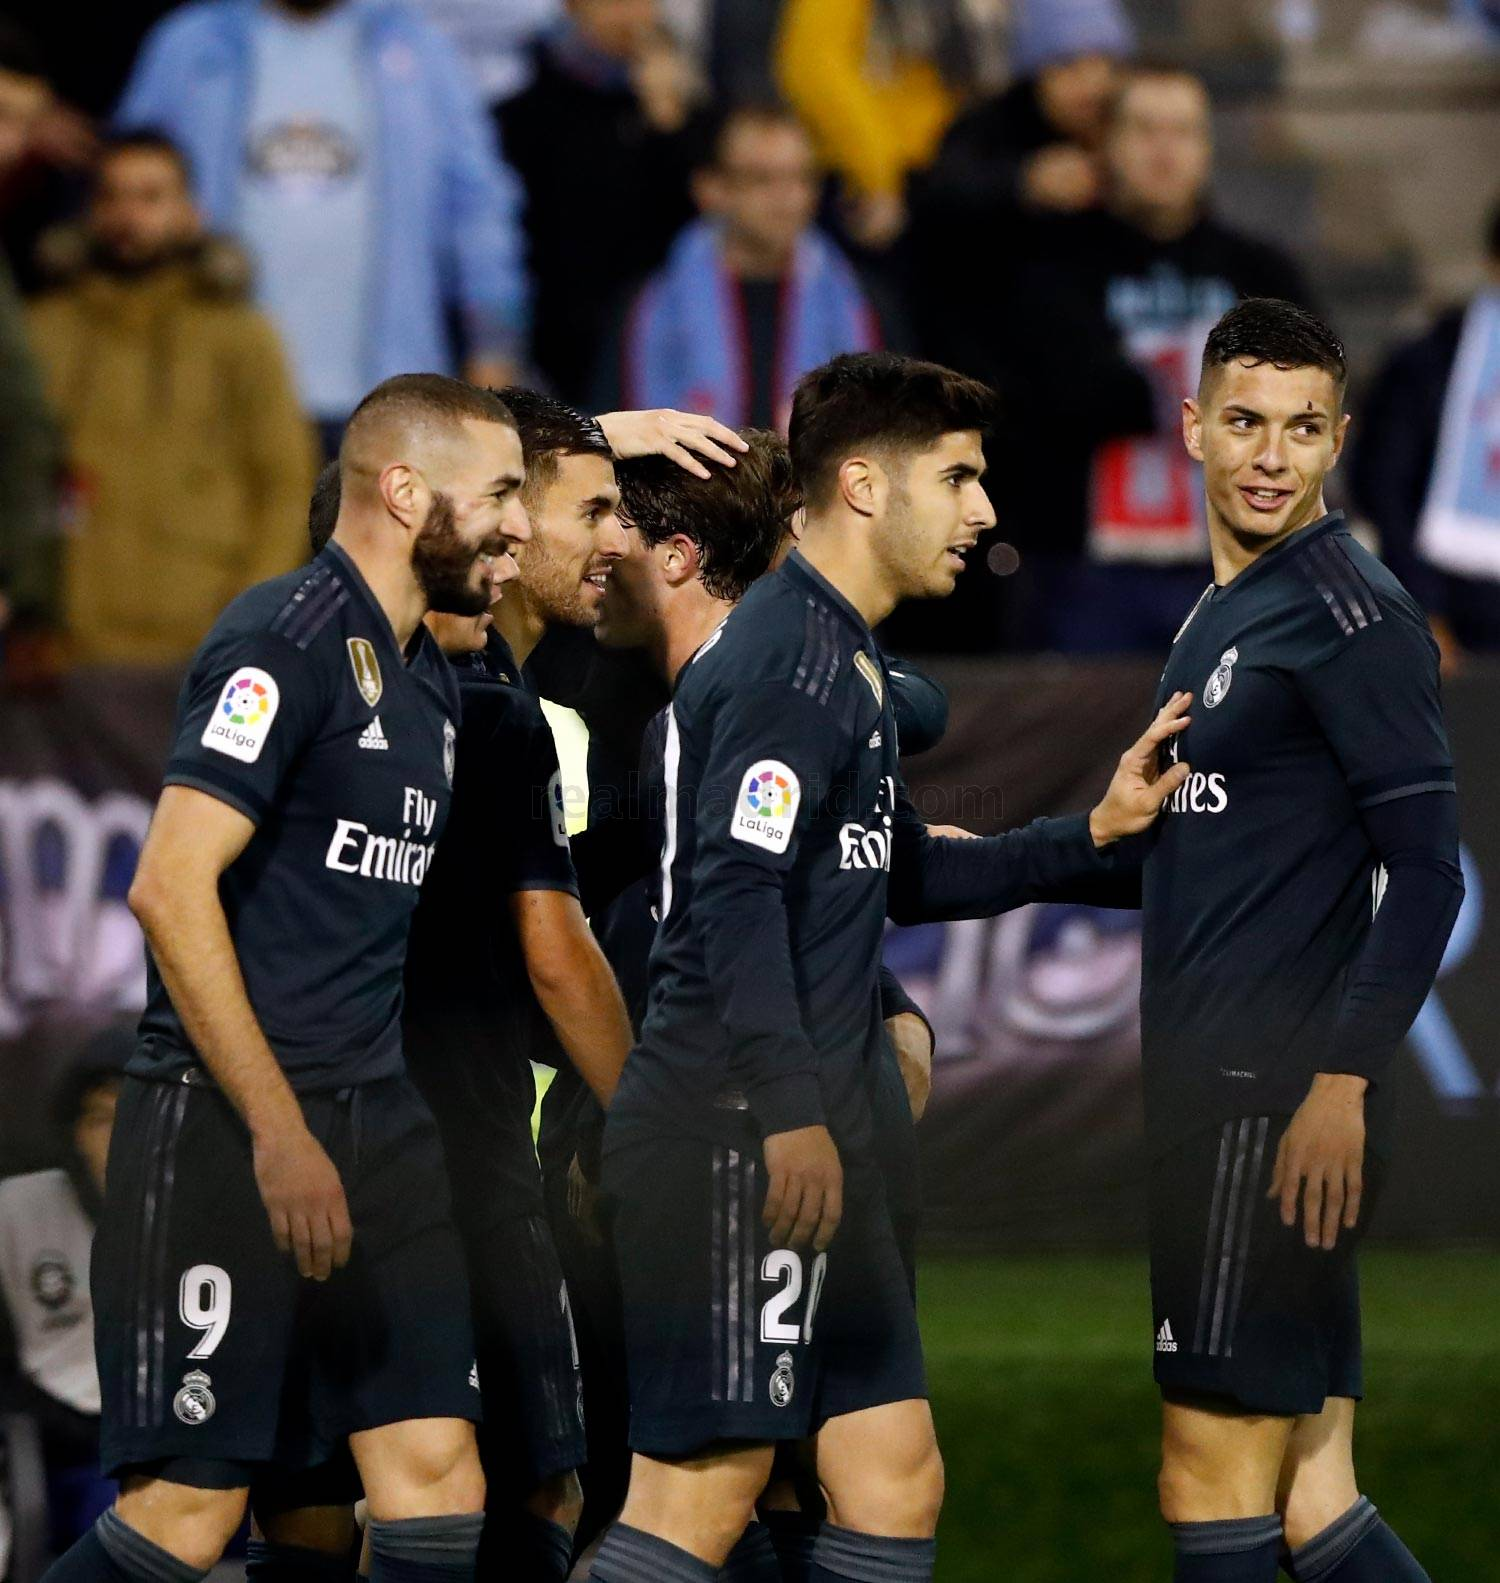 Real Madrid - Celta - Real Madrid - 11-11-2018